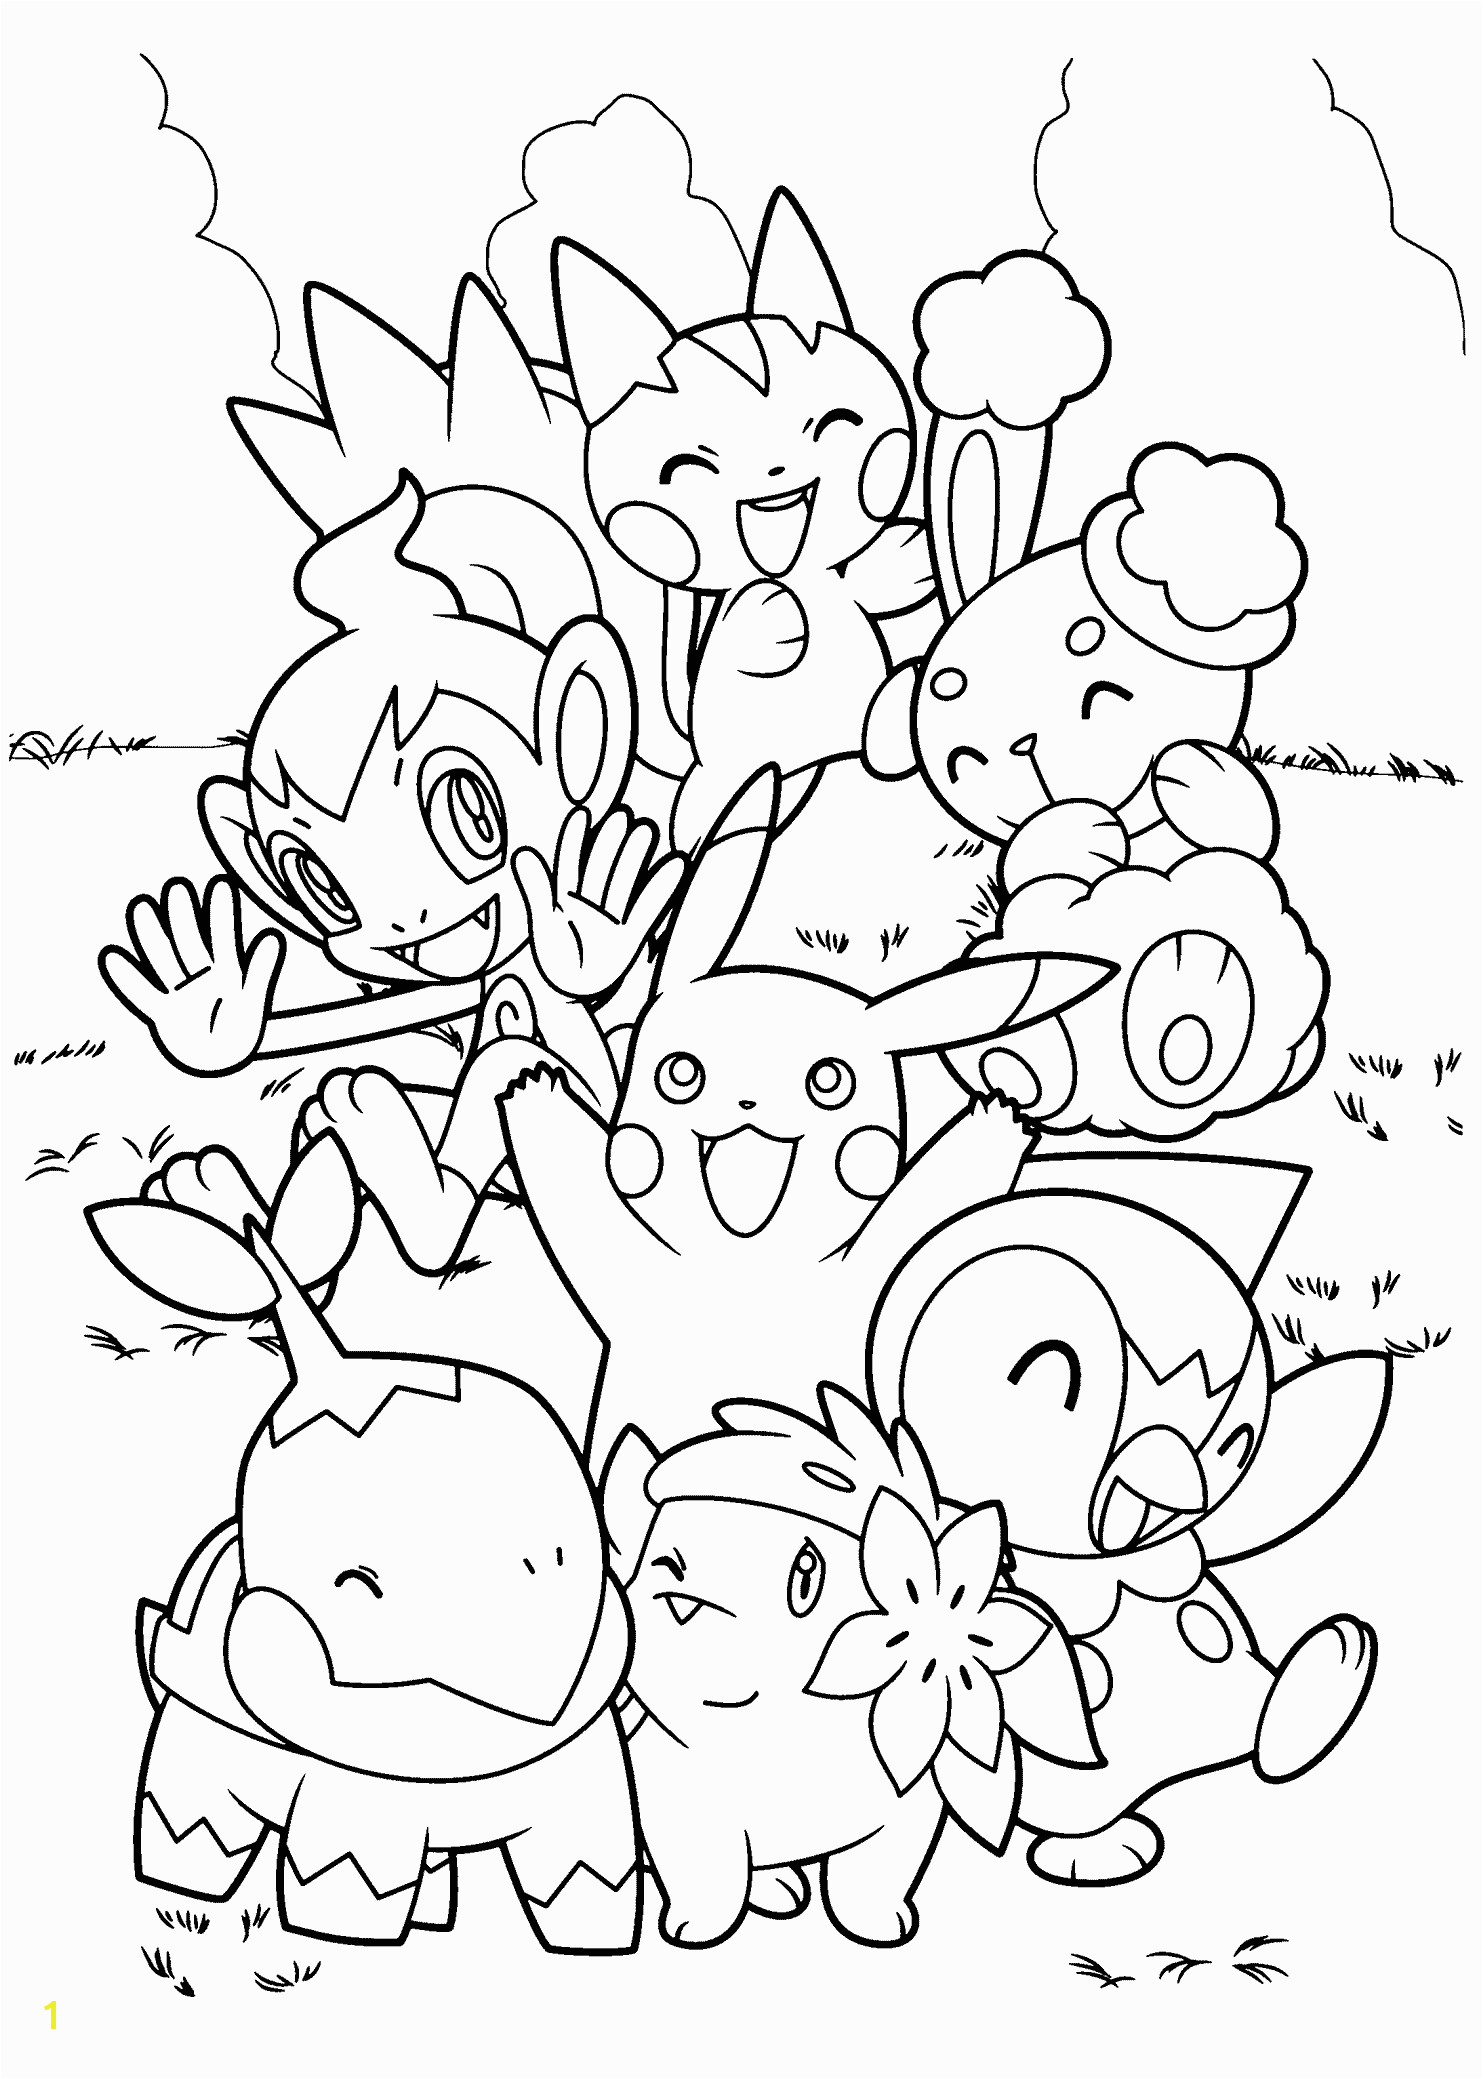 Free Printable Coloring Pages Pokemon Black White top 90 Free Printable Pokemon Coloring Pages Line